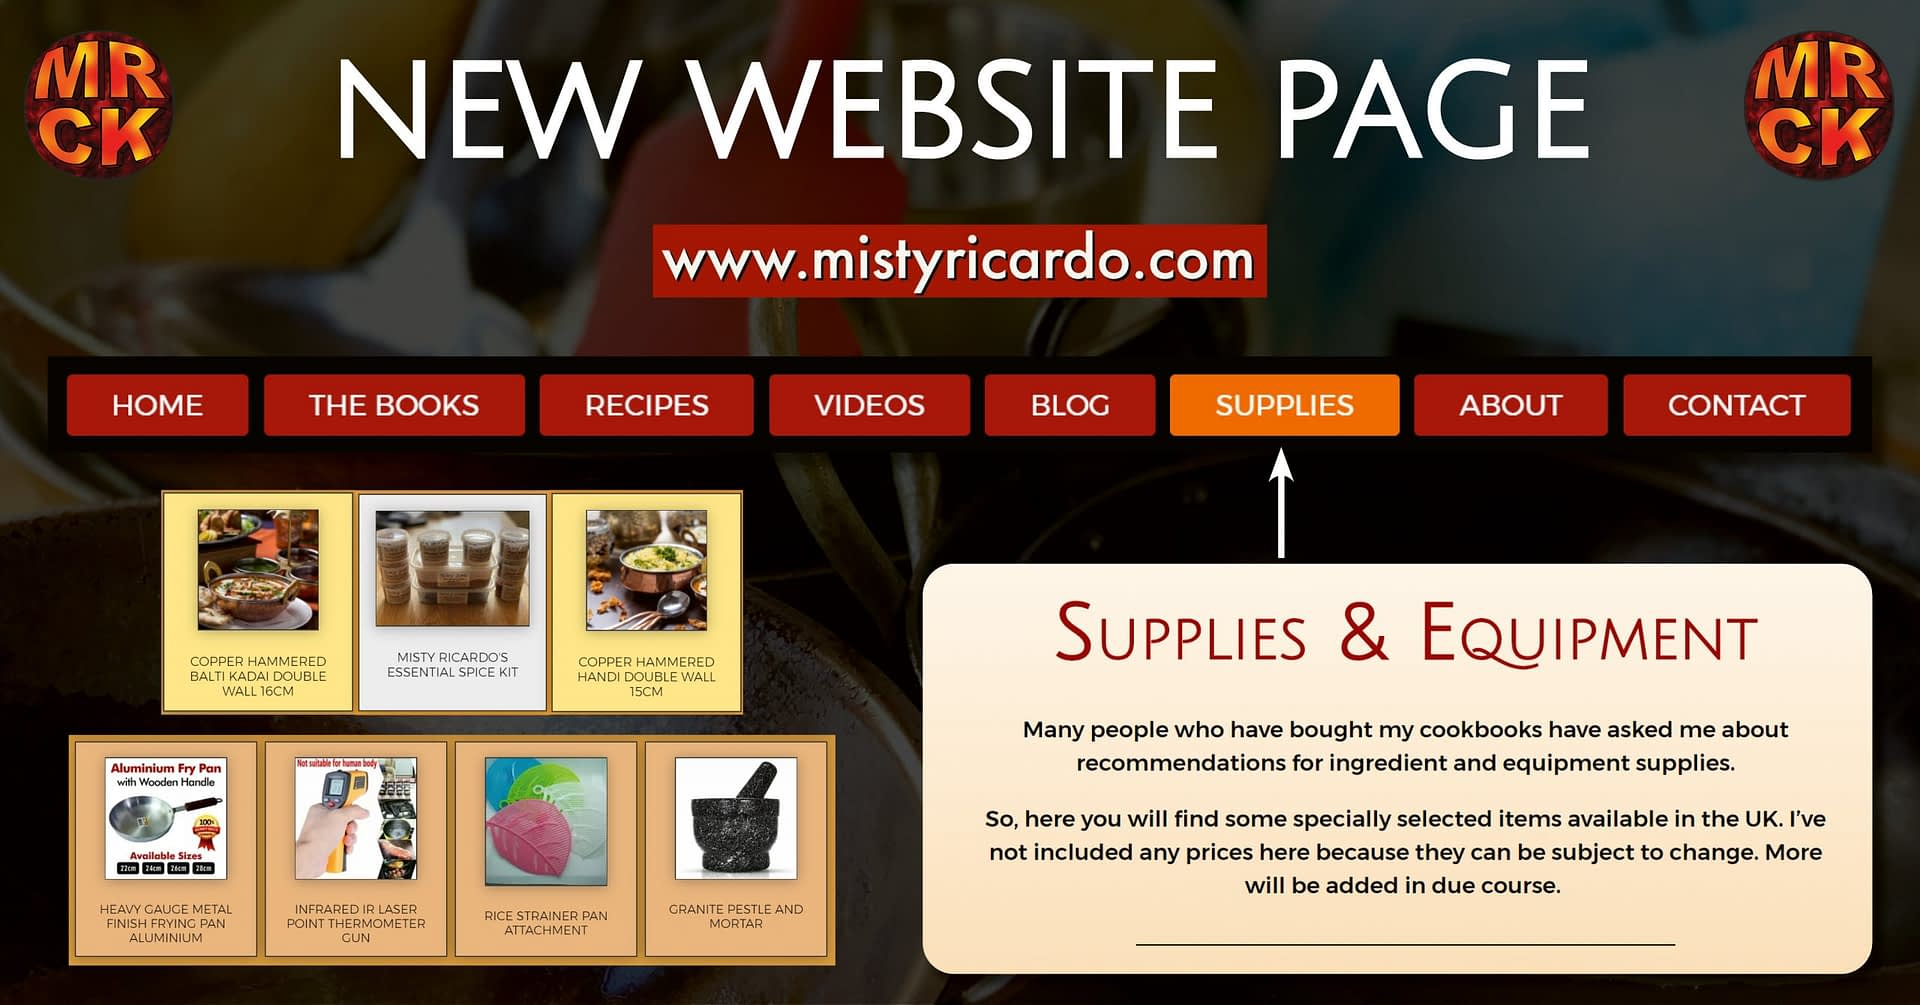 New Website Page Supplies